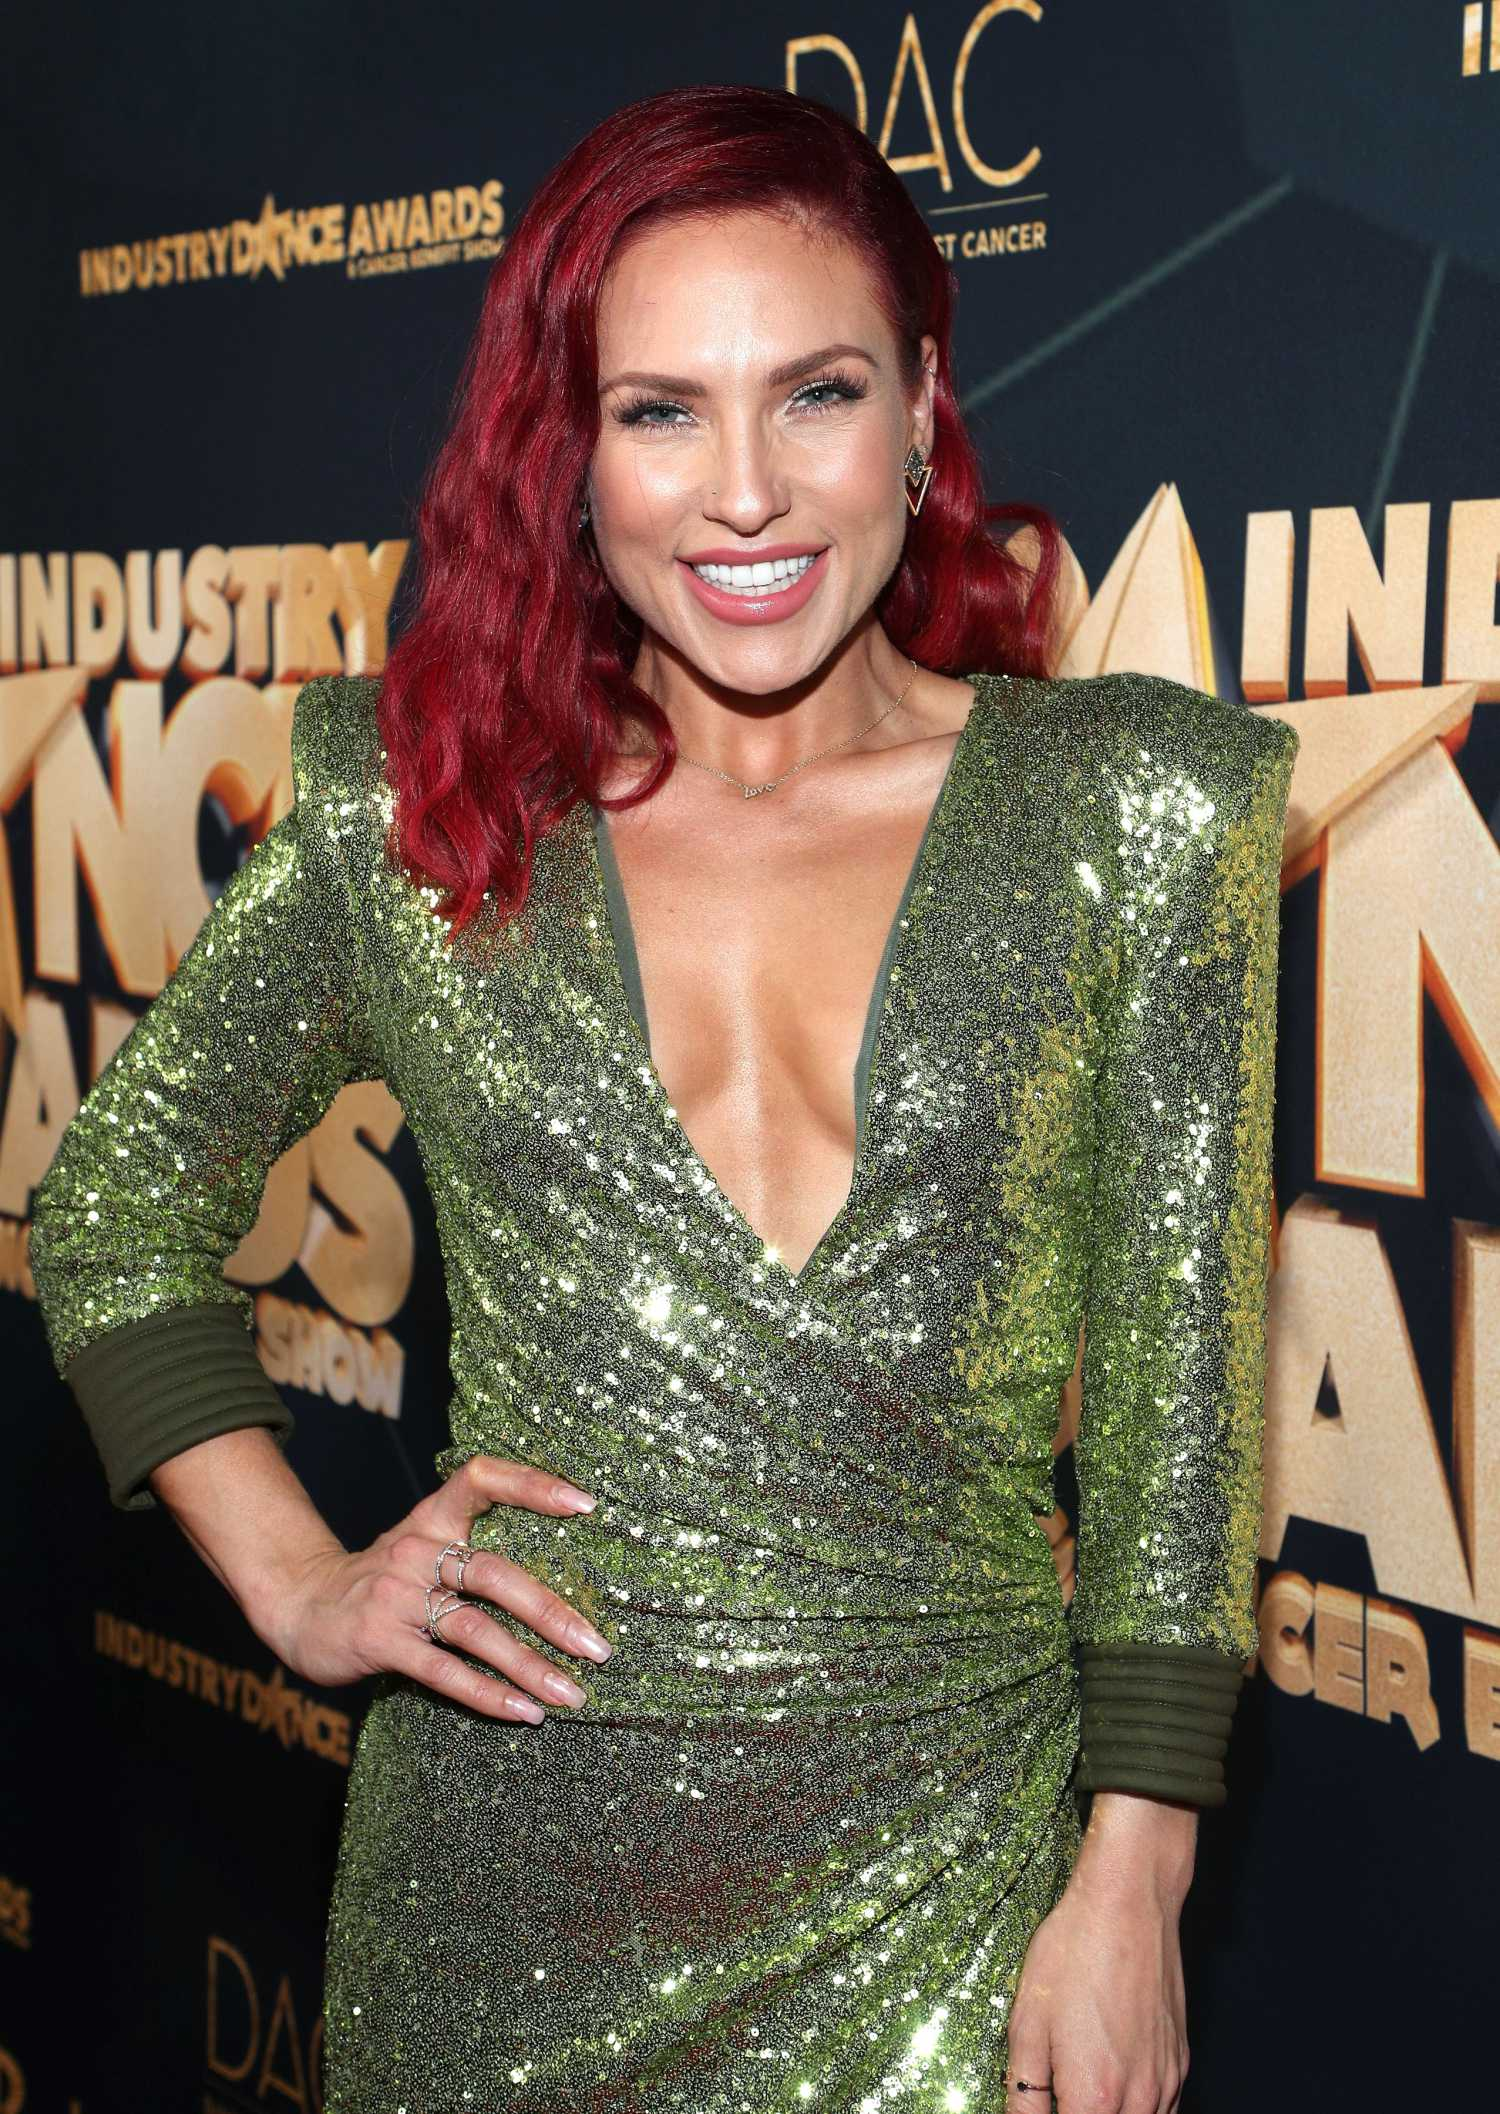 Sharna Burgess Attends Industry Dance Awards and Cancer ...